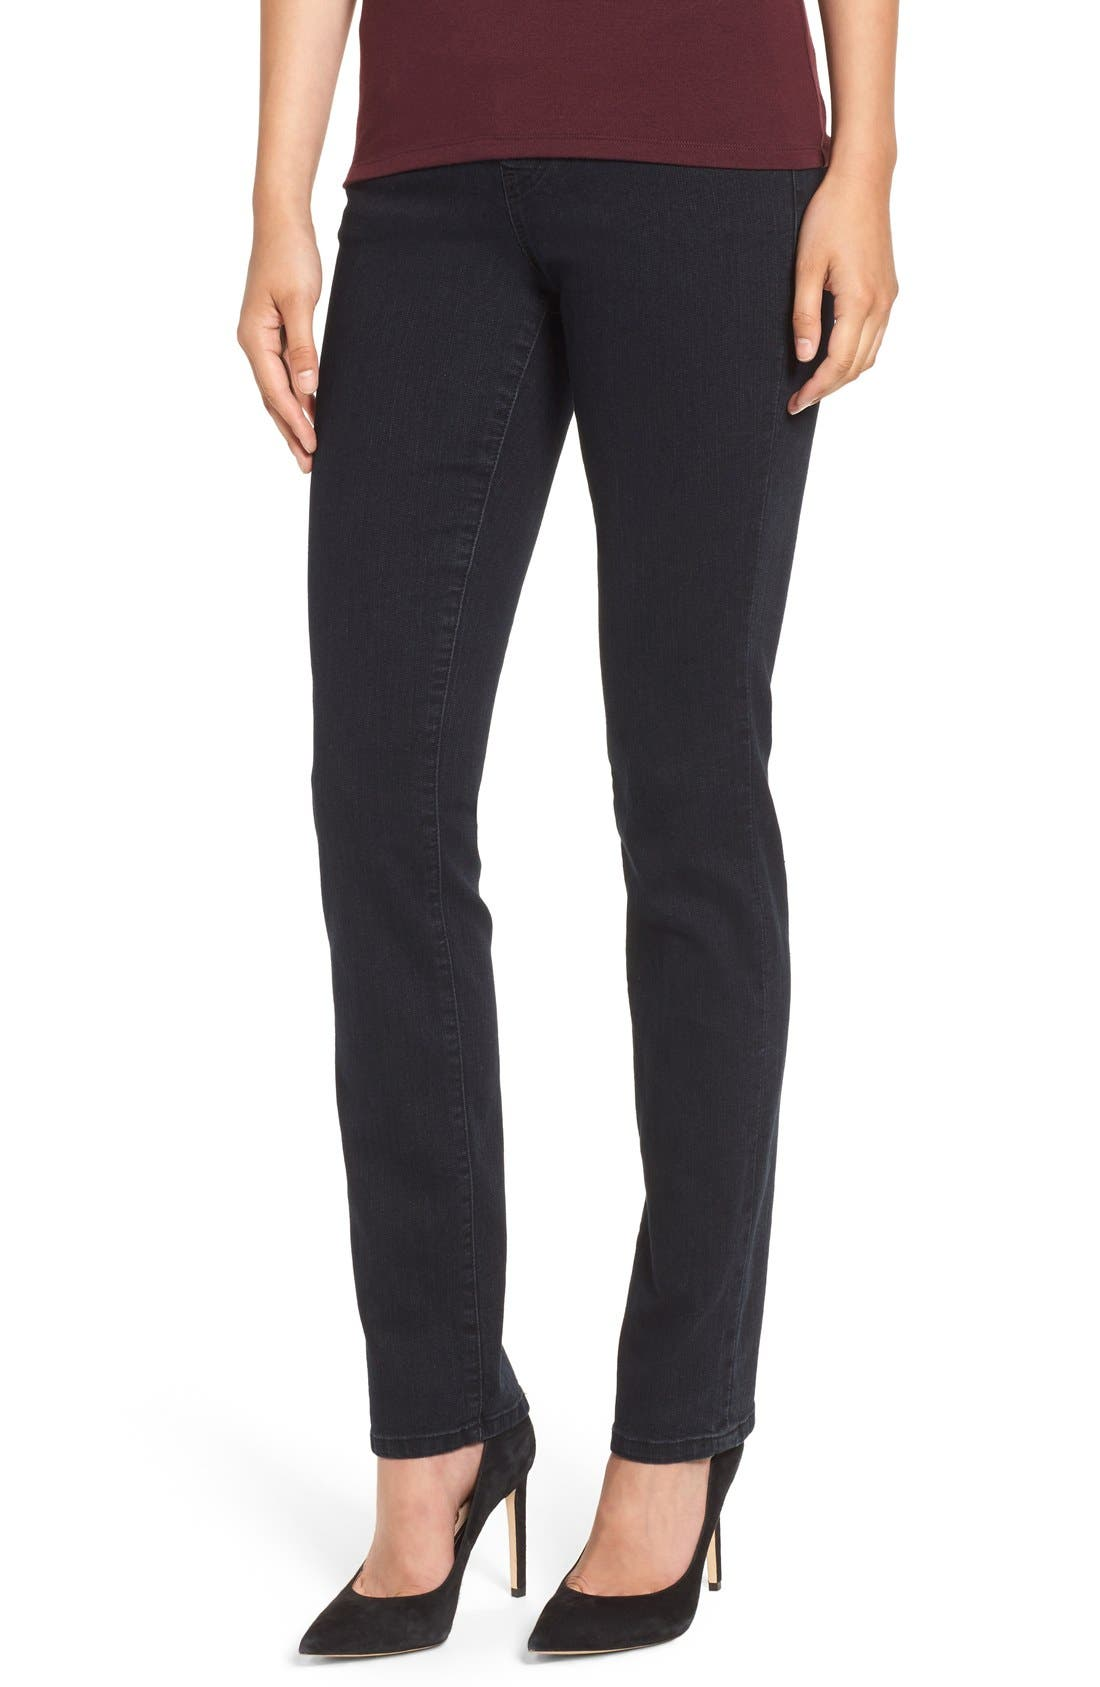 JAG JEANS 'Peri' Straight Leg Pull-On Jeans